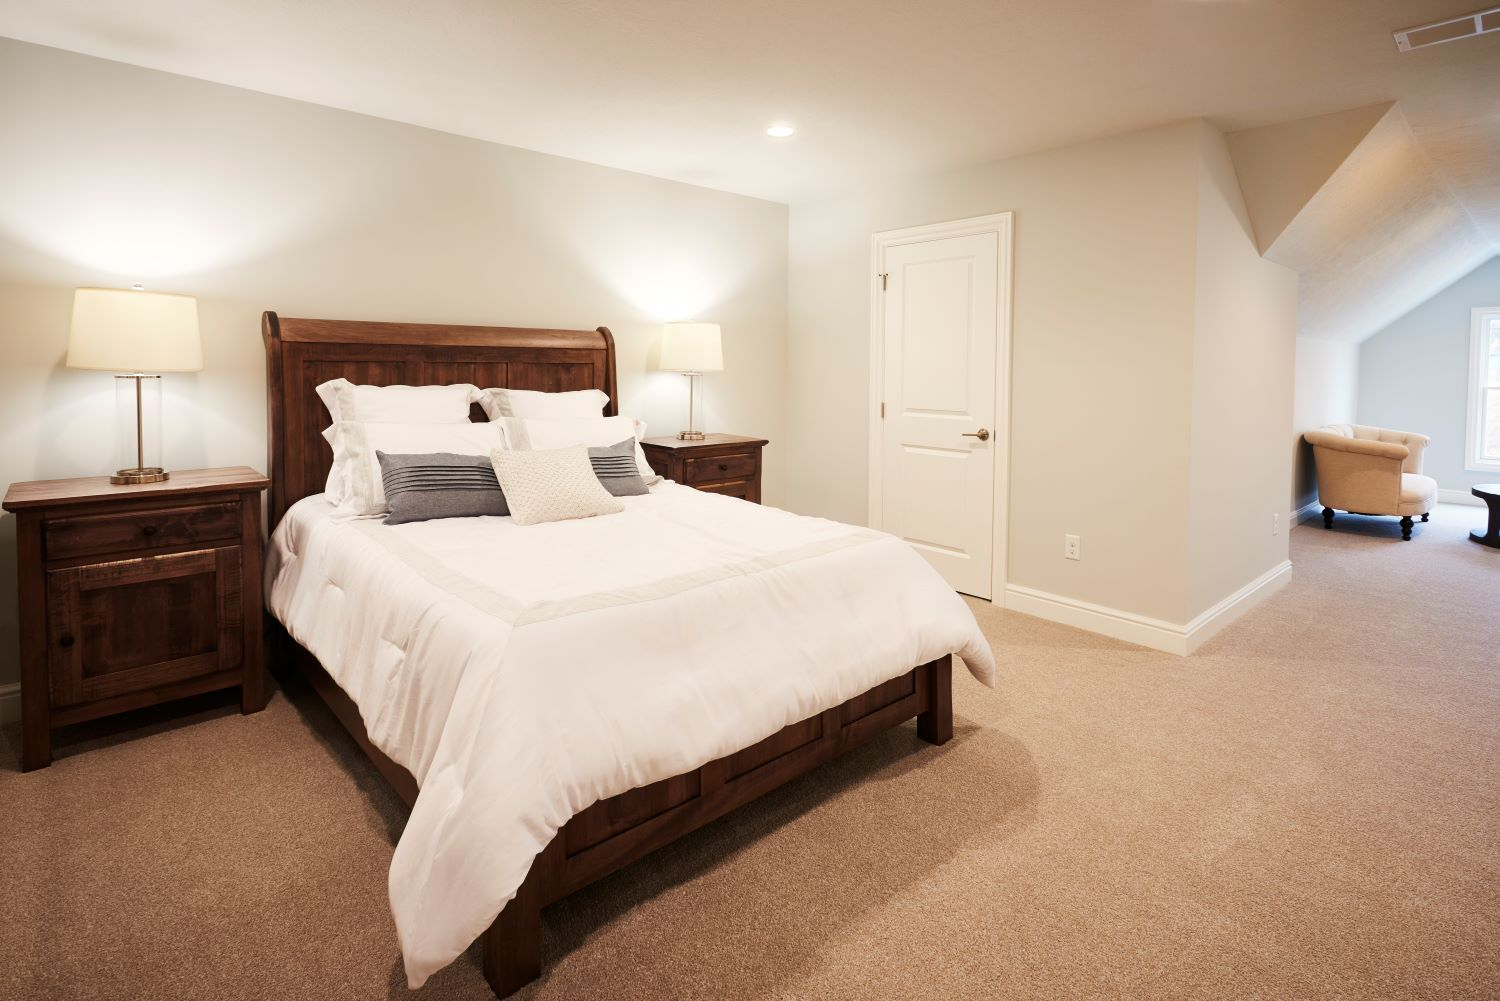 Bedroom featured in the Petersburg By Eddy Homes in Pittsburgh, PA